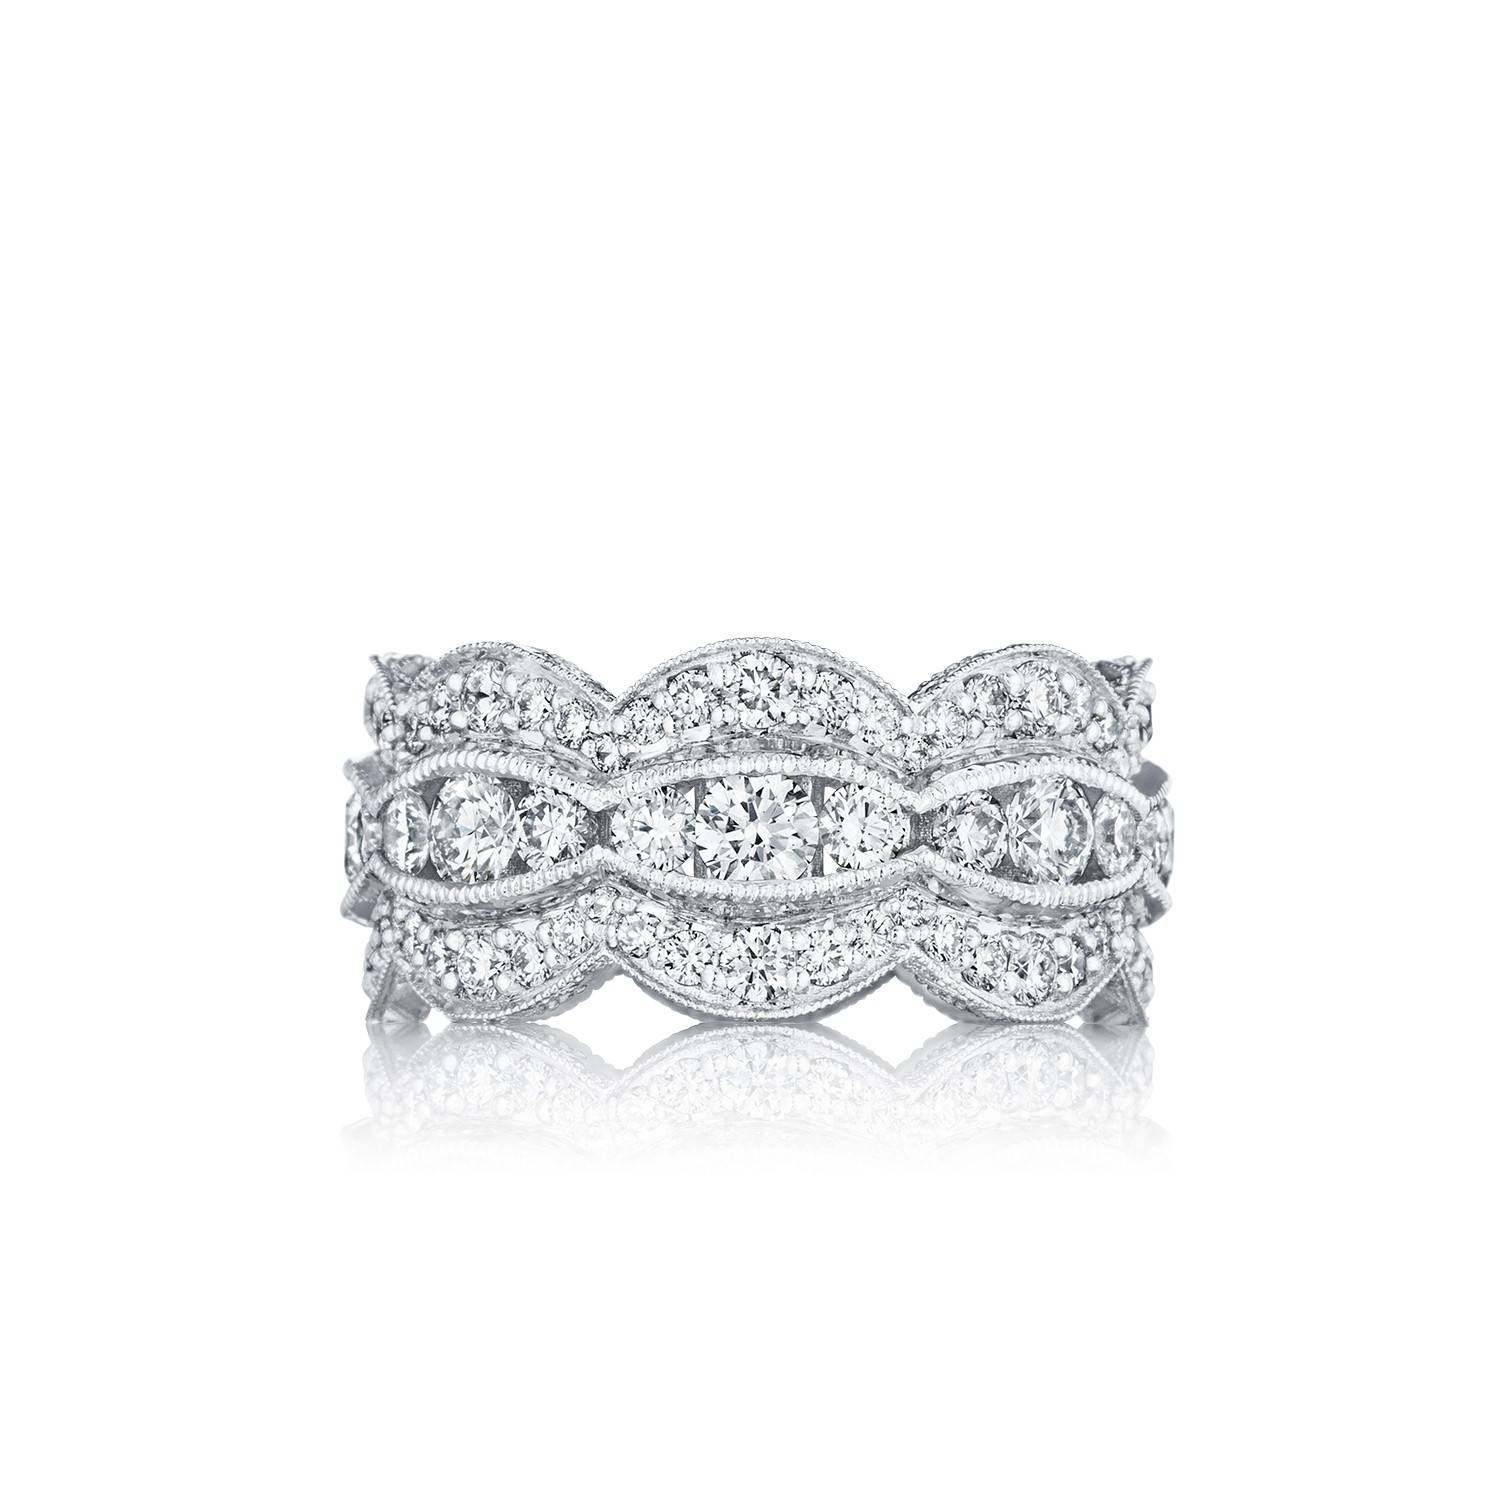 Adoration Ht2616B12 | Women's Wedding Band | Tacori Within Women's Wedding Bands (View 3 of 15)